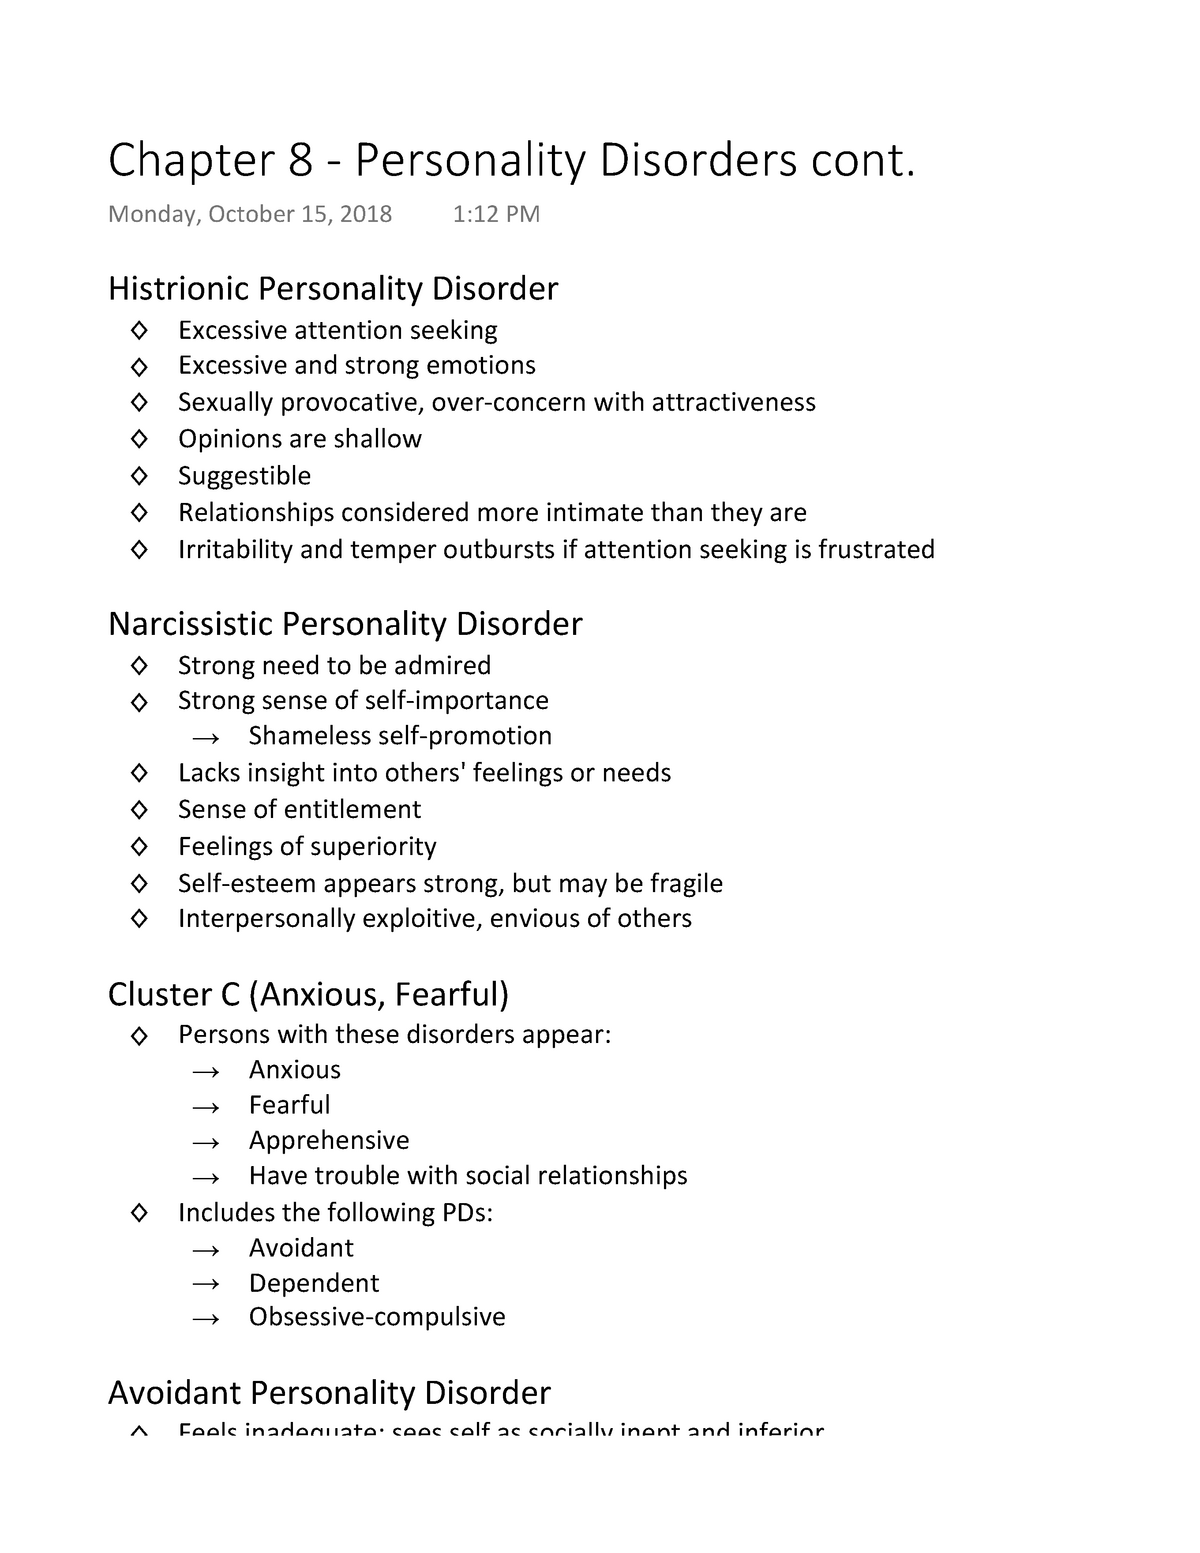 Chapter 8 - Personality Disorders cont - 3750 480-002